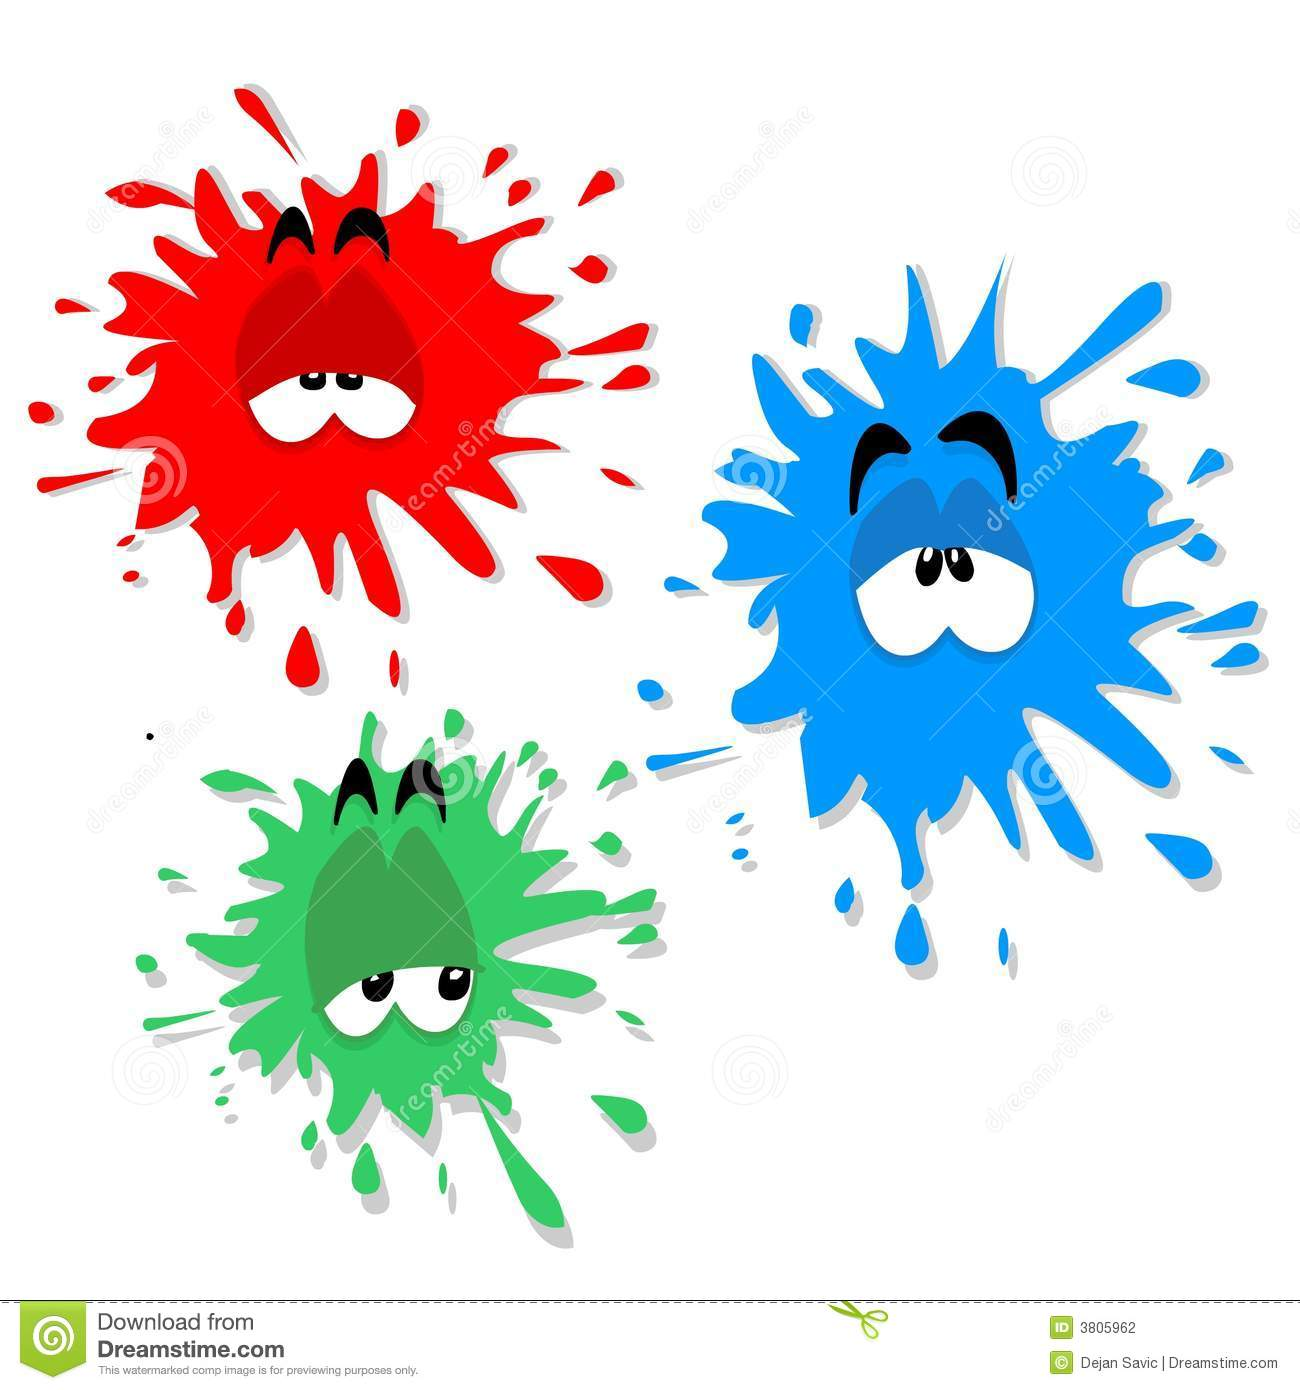 Ink blot characters